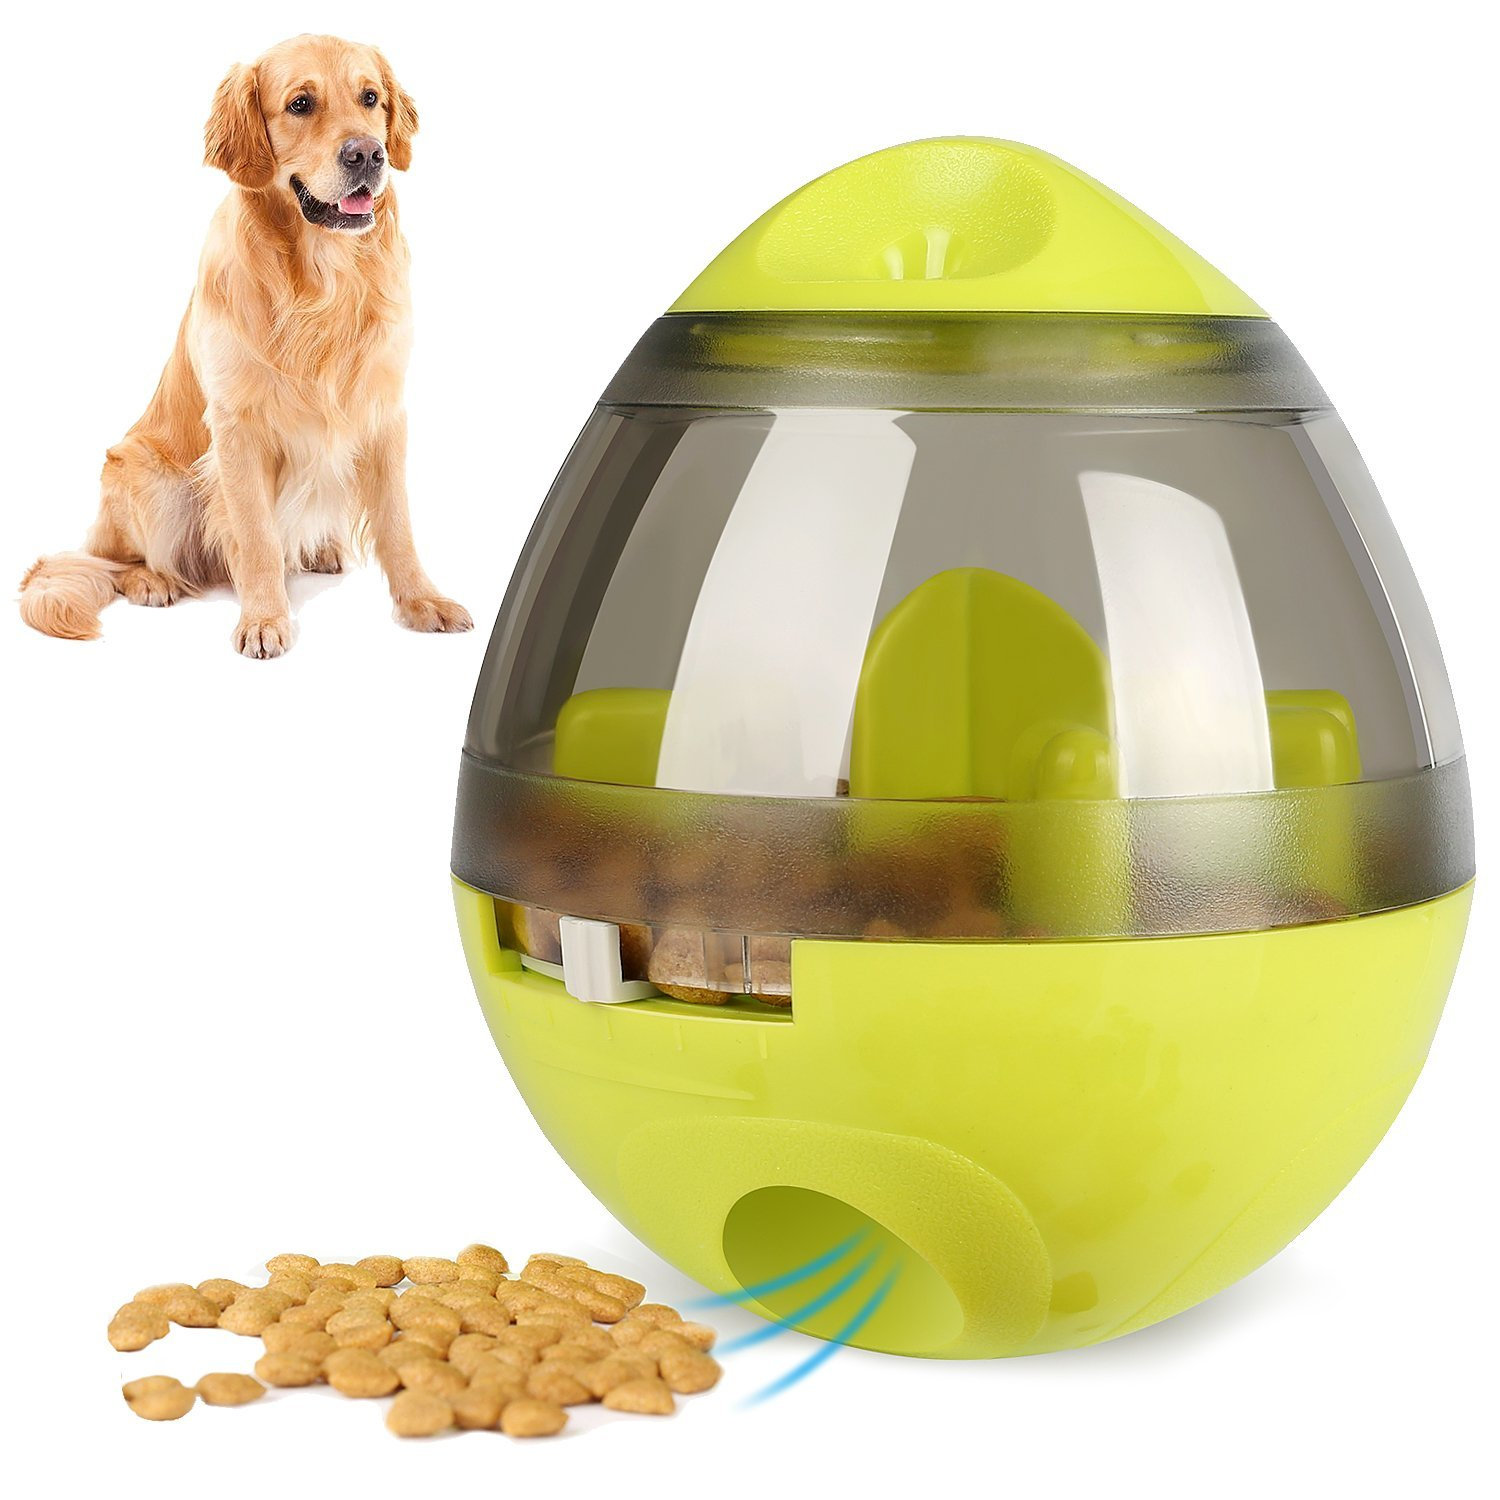 KAOSITONG Interactive Dog Toy,Interactive Food Dispensing Ball Dogs Cat Increases IQ & Mental Stimulation,Slows Down Eating,Promoting Active Healthy Feeding Small Medium Large Dogs,Easy to Clean